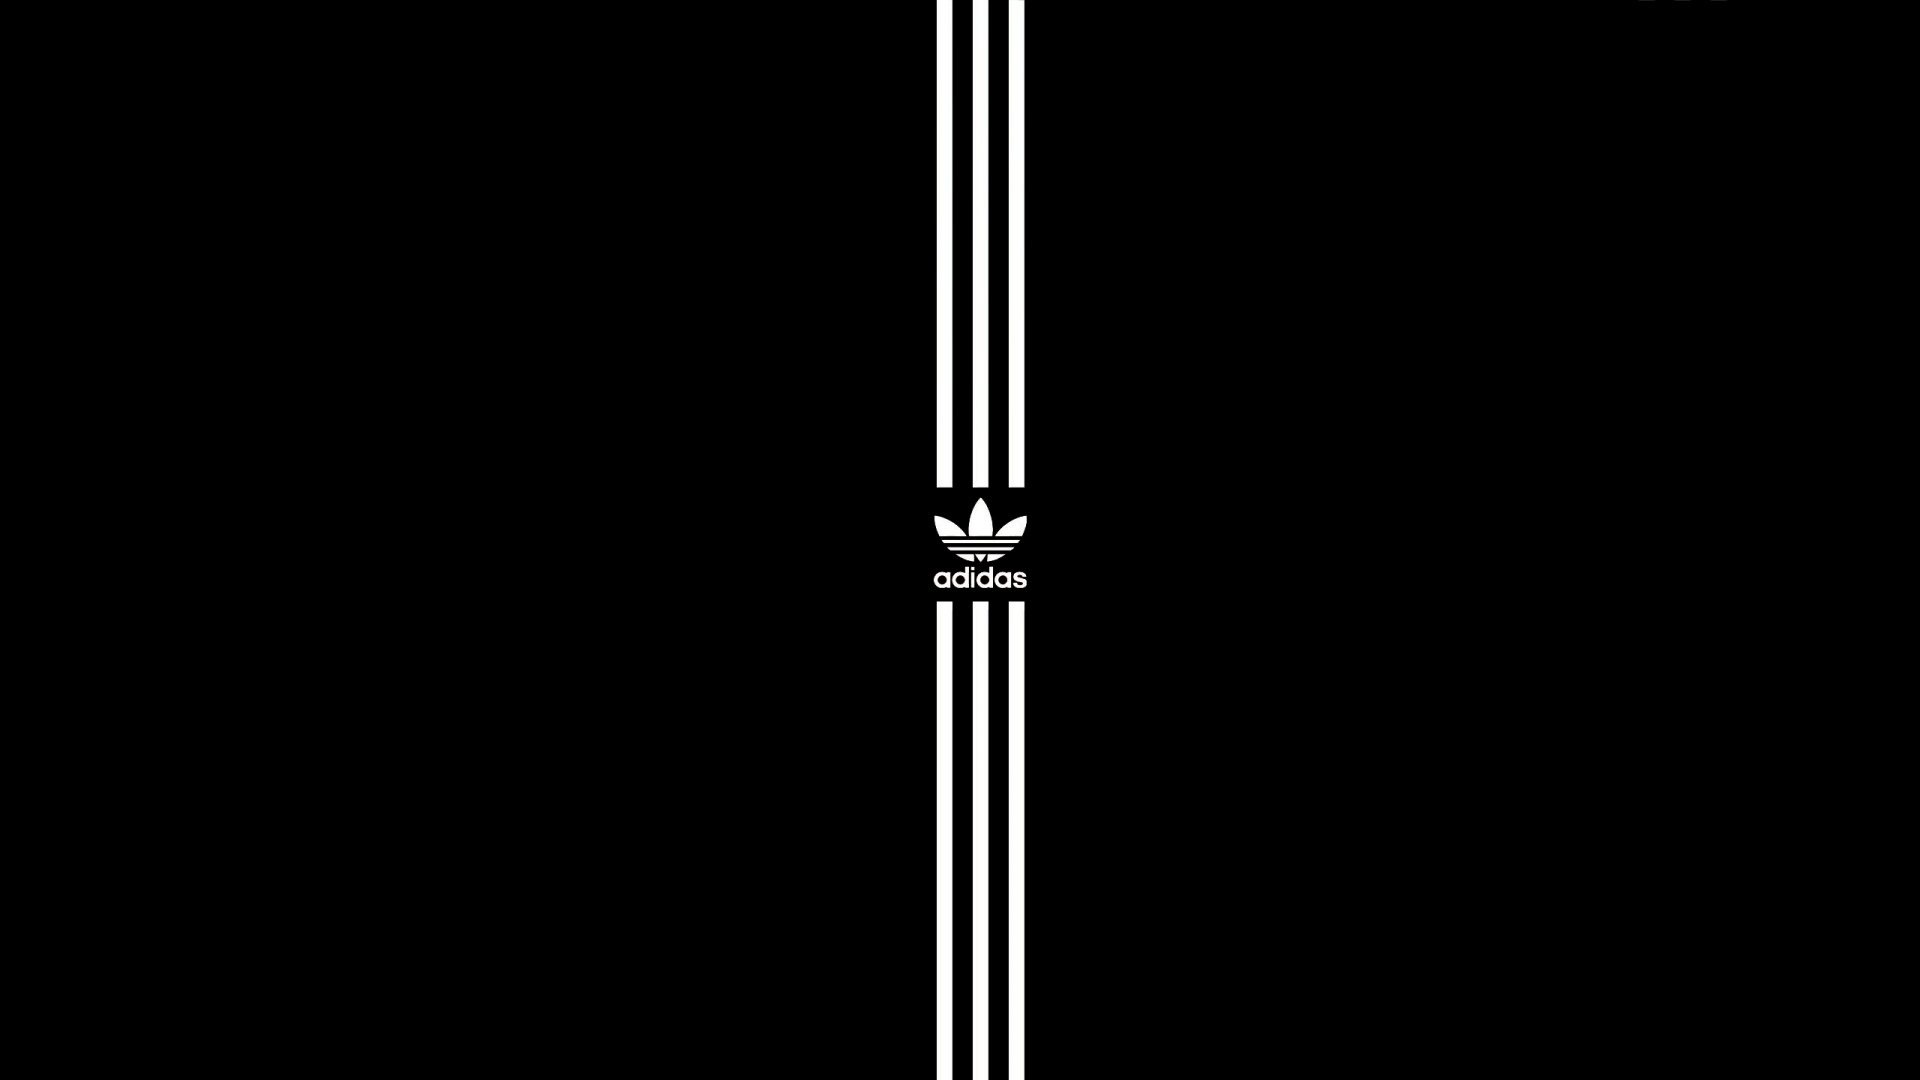 Adidas Wallpaper HD 1920x1080